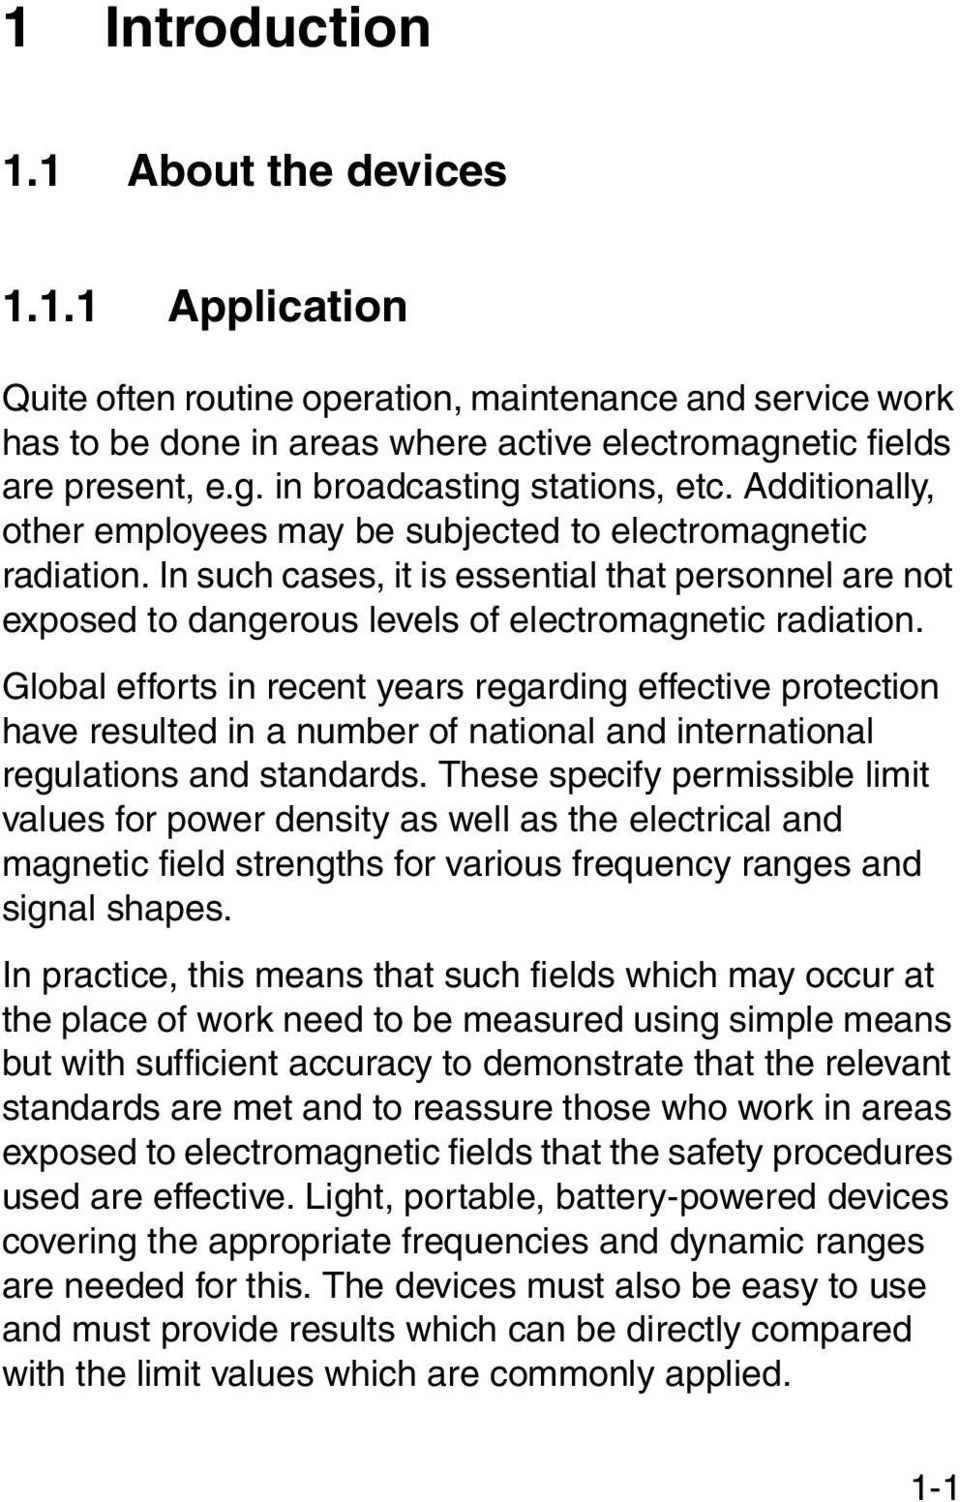 In such cases, it is essential that personnel are not exposed to dangerous levels of electromagnetic radiation.